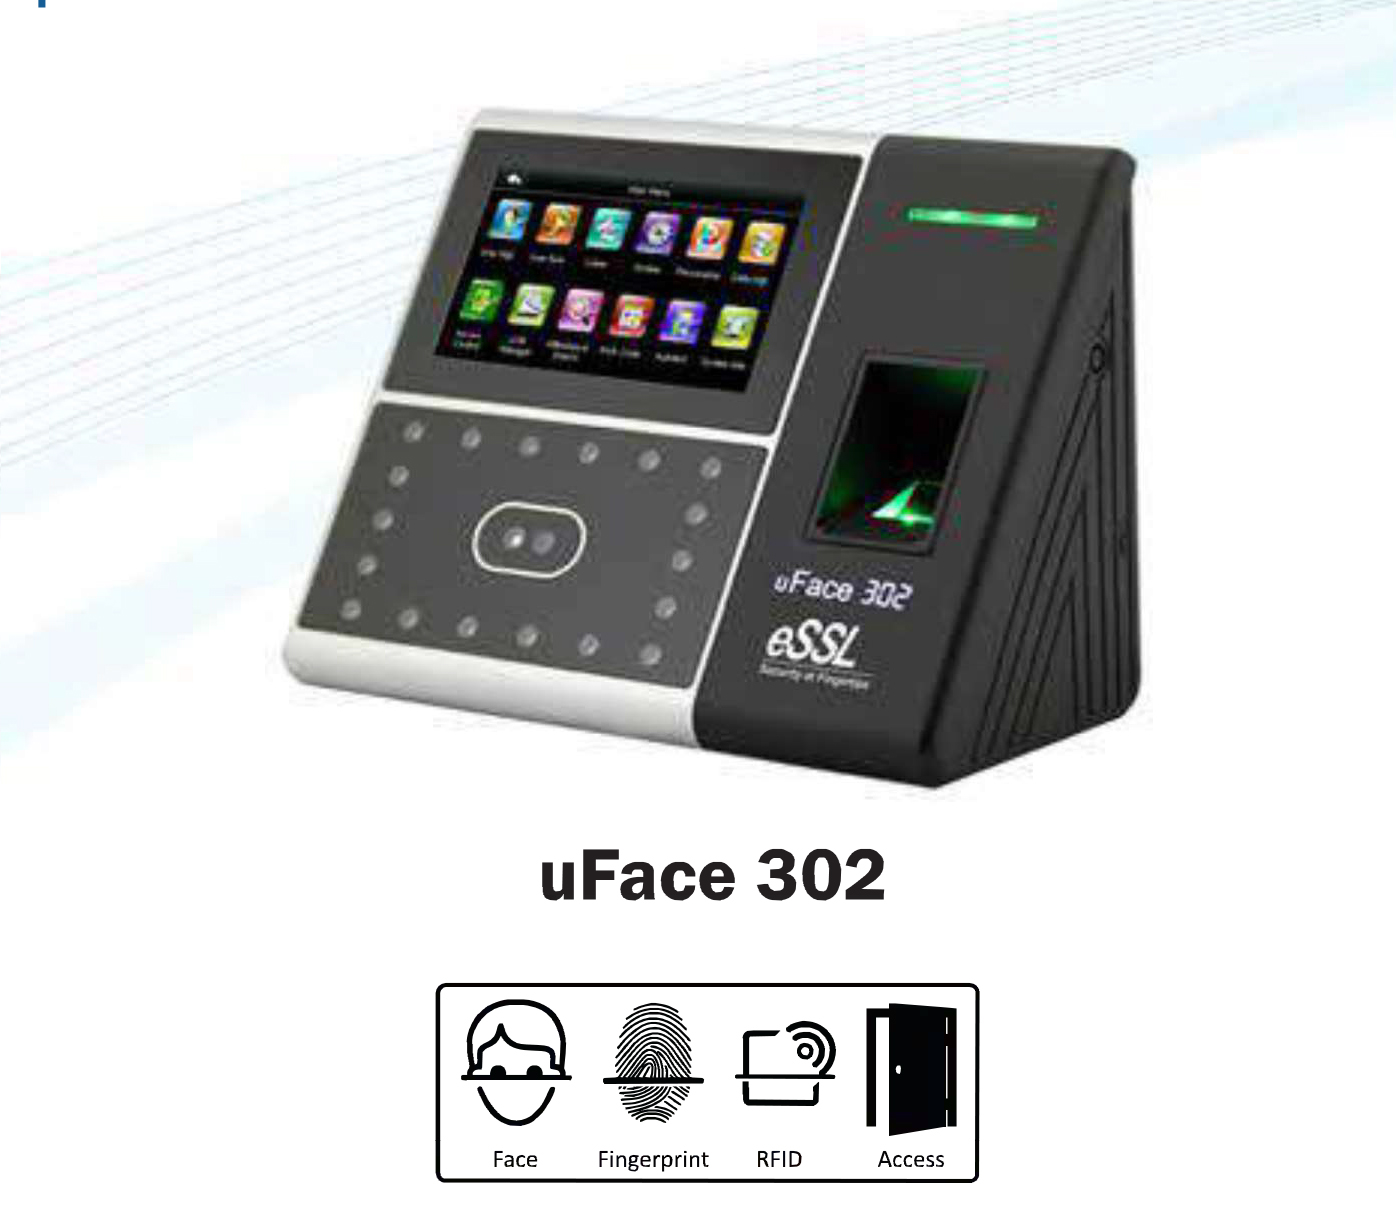 Access Control Readers best in the UAE Market